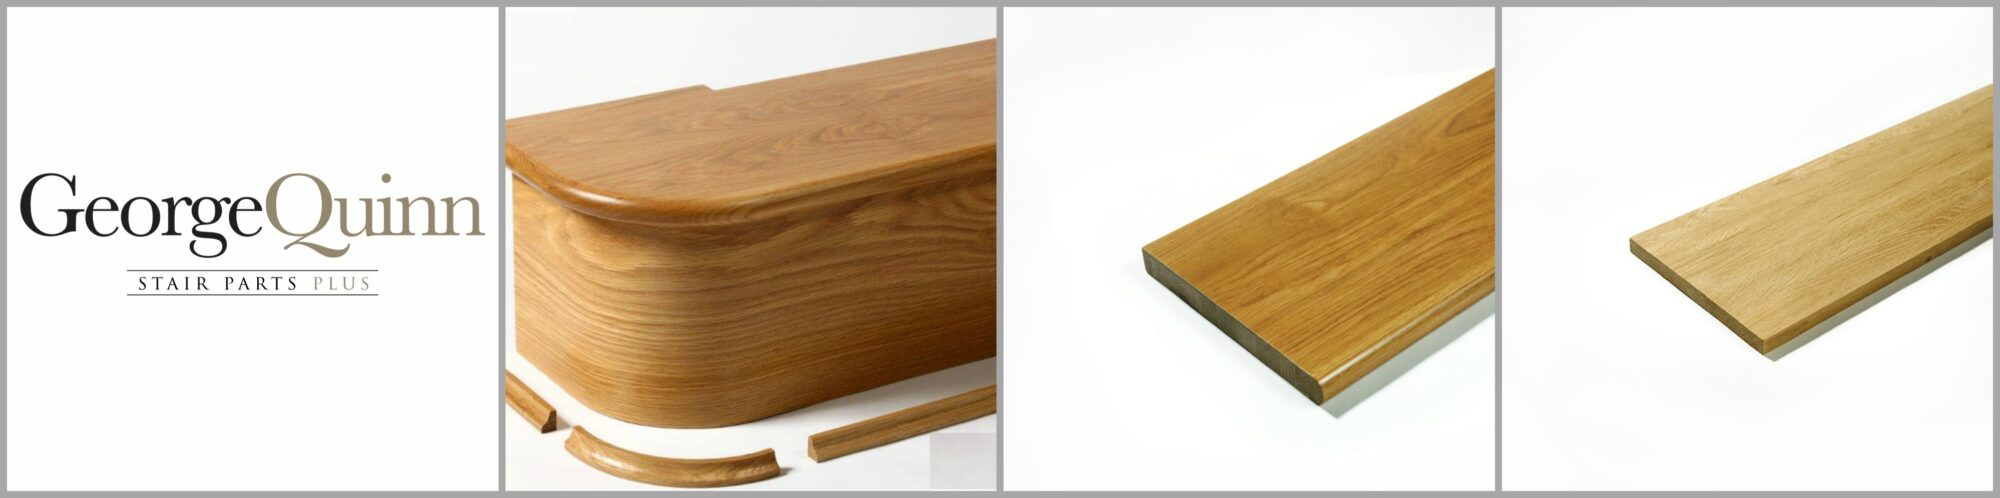 George Quinn Stair Parts Plus - Engineered Stair Parts